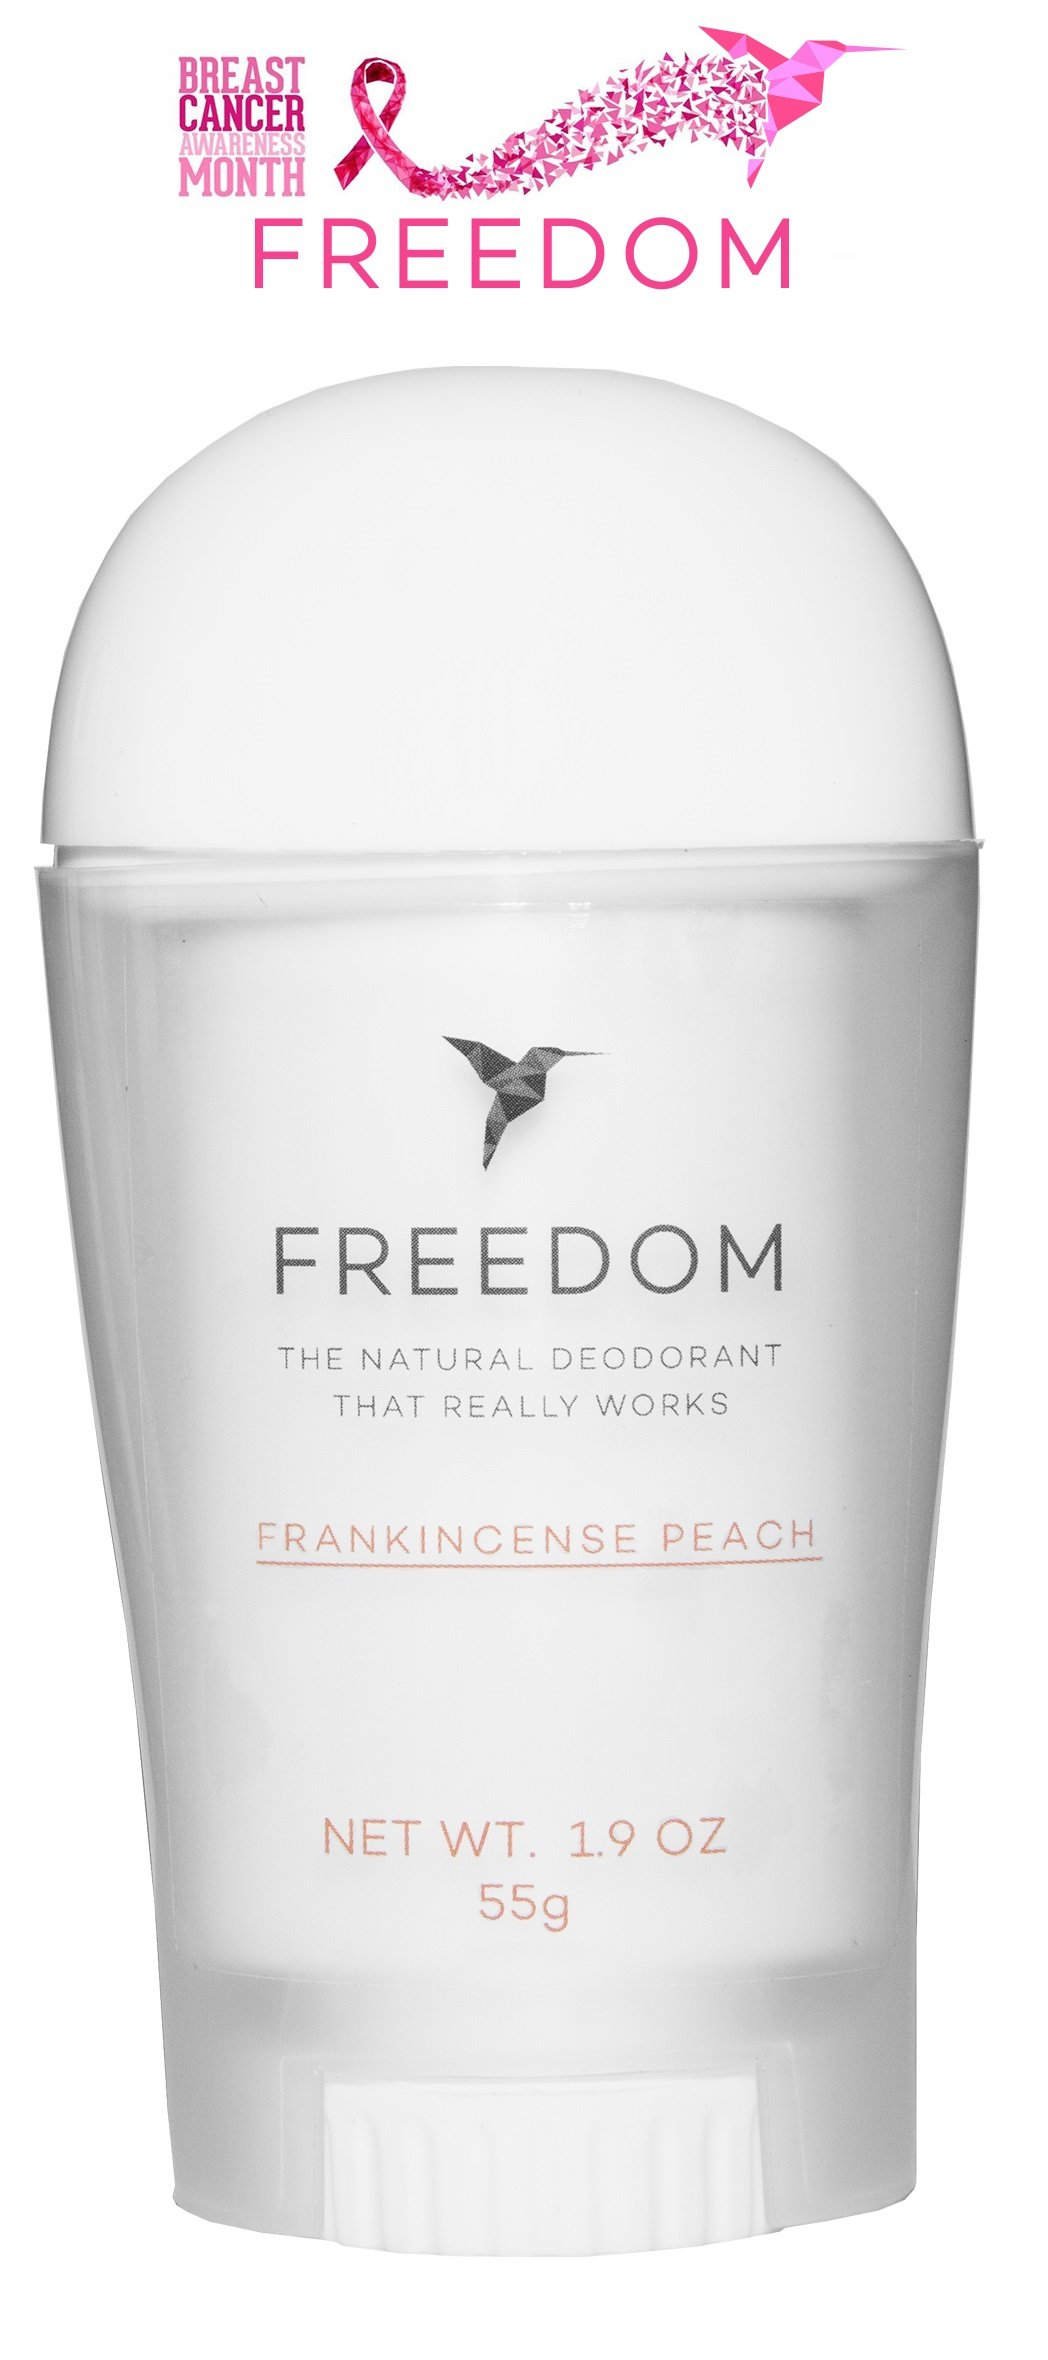 Freedom All Natural Deodorant Aluminum Free Odor Protection Tested & Loved by Cancer Survivors, Busy Execs, Military Personnel, Athletes, Healthy Moms & Kids - Frankincense Peach 1.9 oz